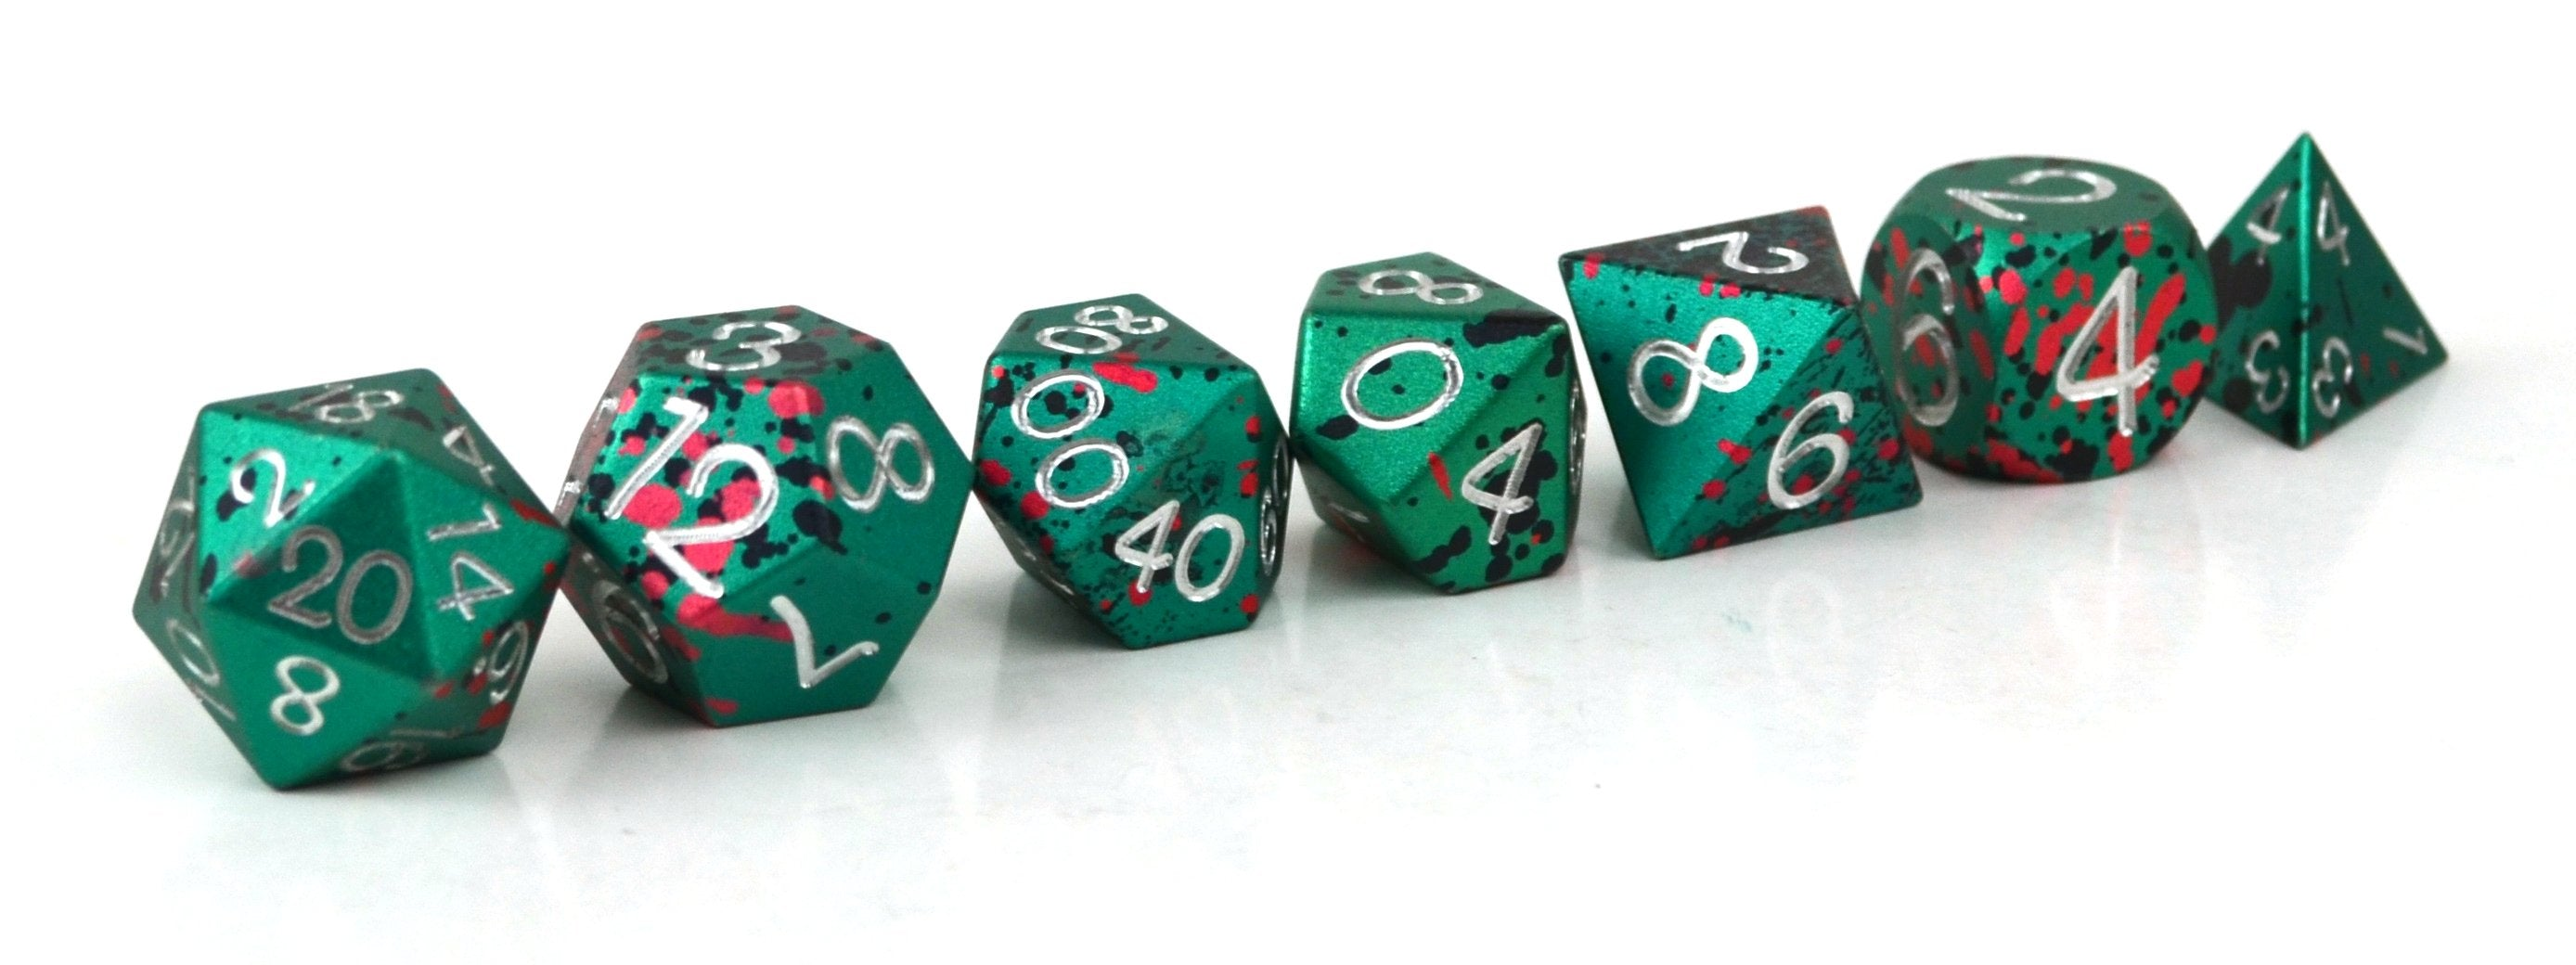 Destiny Aluminium Dice Set of 7